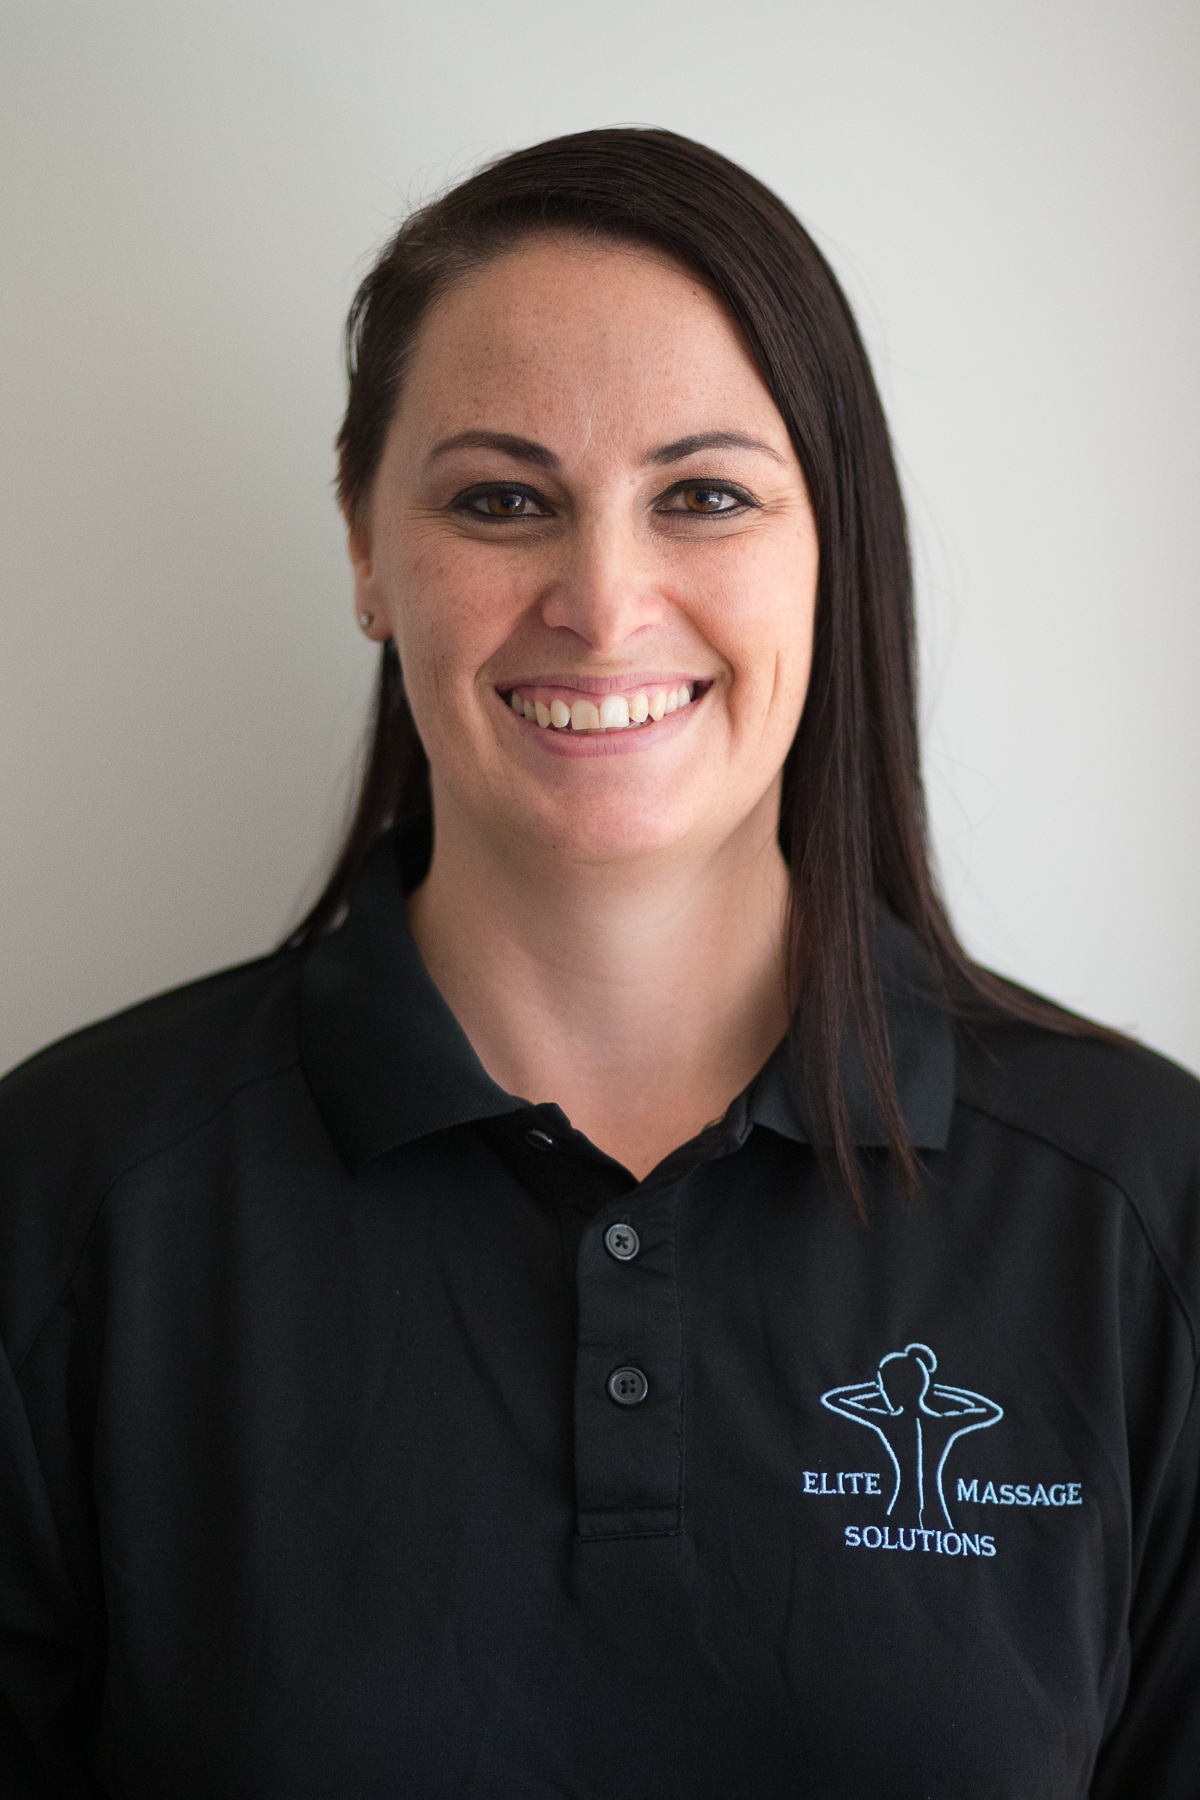 Elite Massage Solutions Kellie Henning